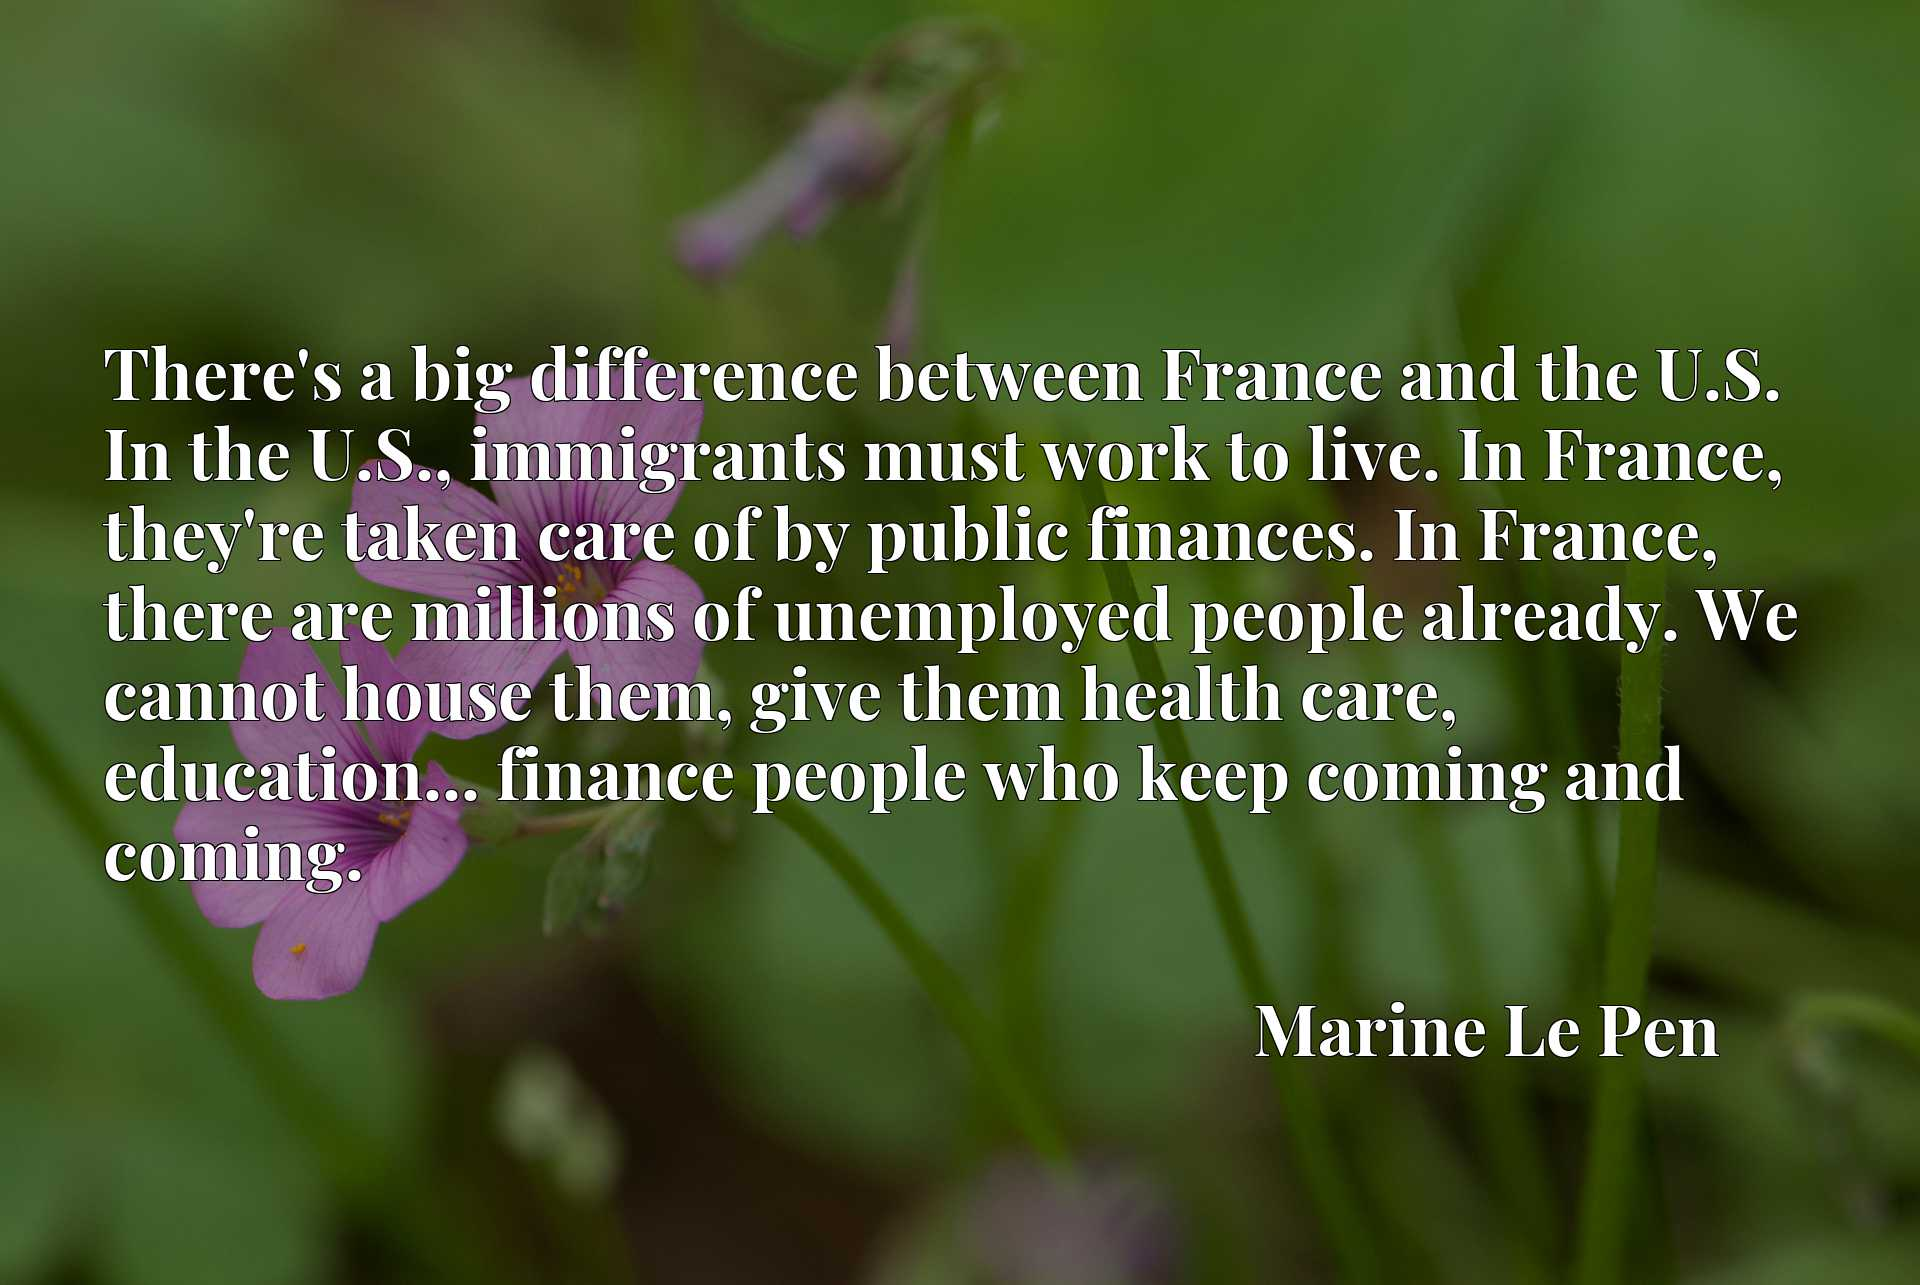 There's a big difference between France and the U.S. In the U.S., immigrants must work to live. In France, they're taken care of by public finances. In France, there are millions of unemployed people already. We cannot house them, give them health care, education... finance people who keep coming and coming.